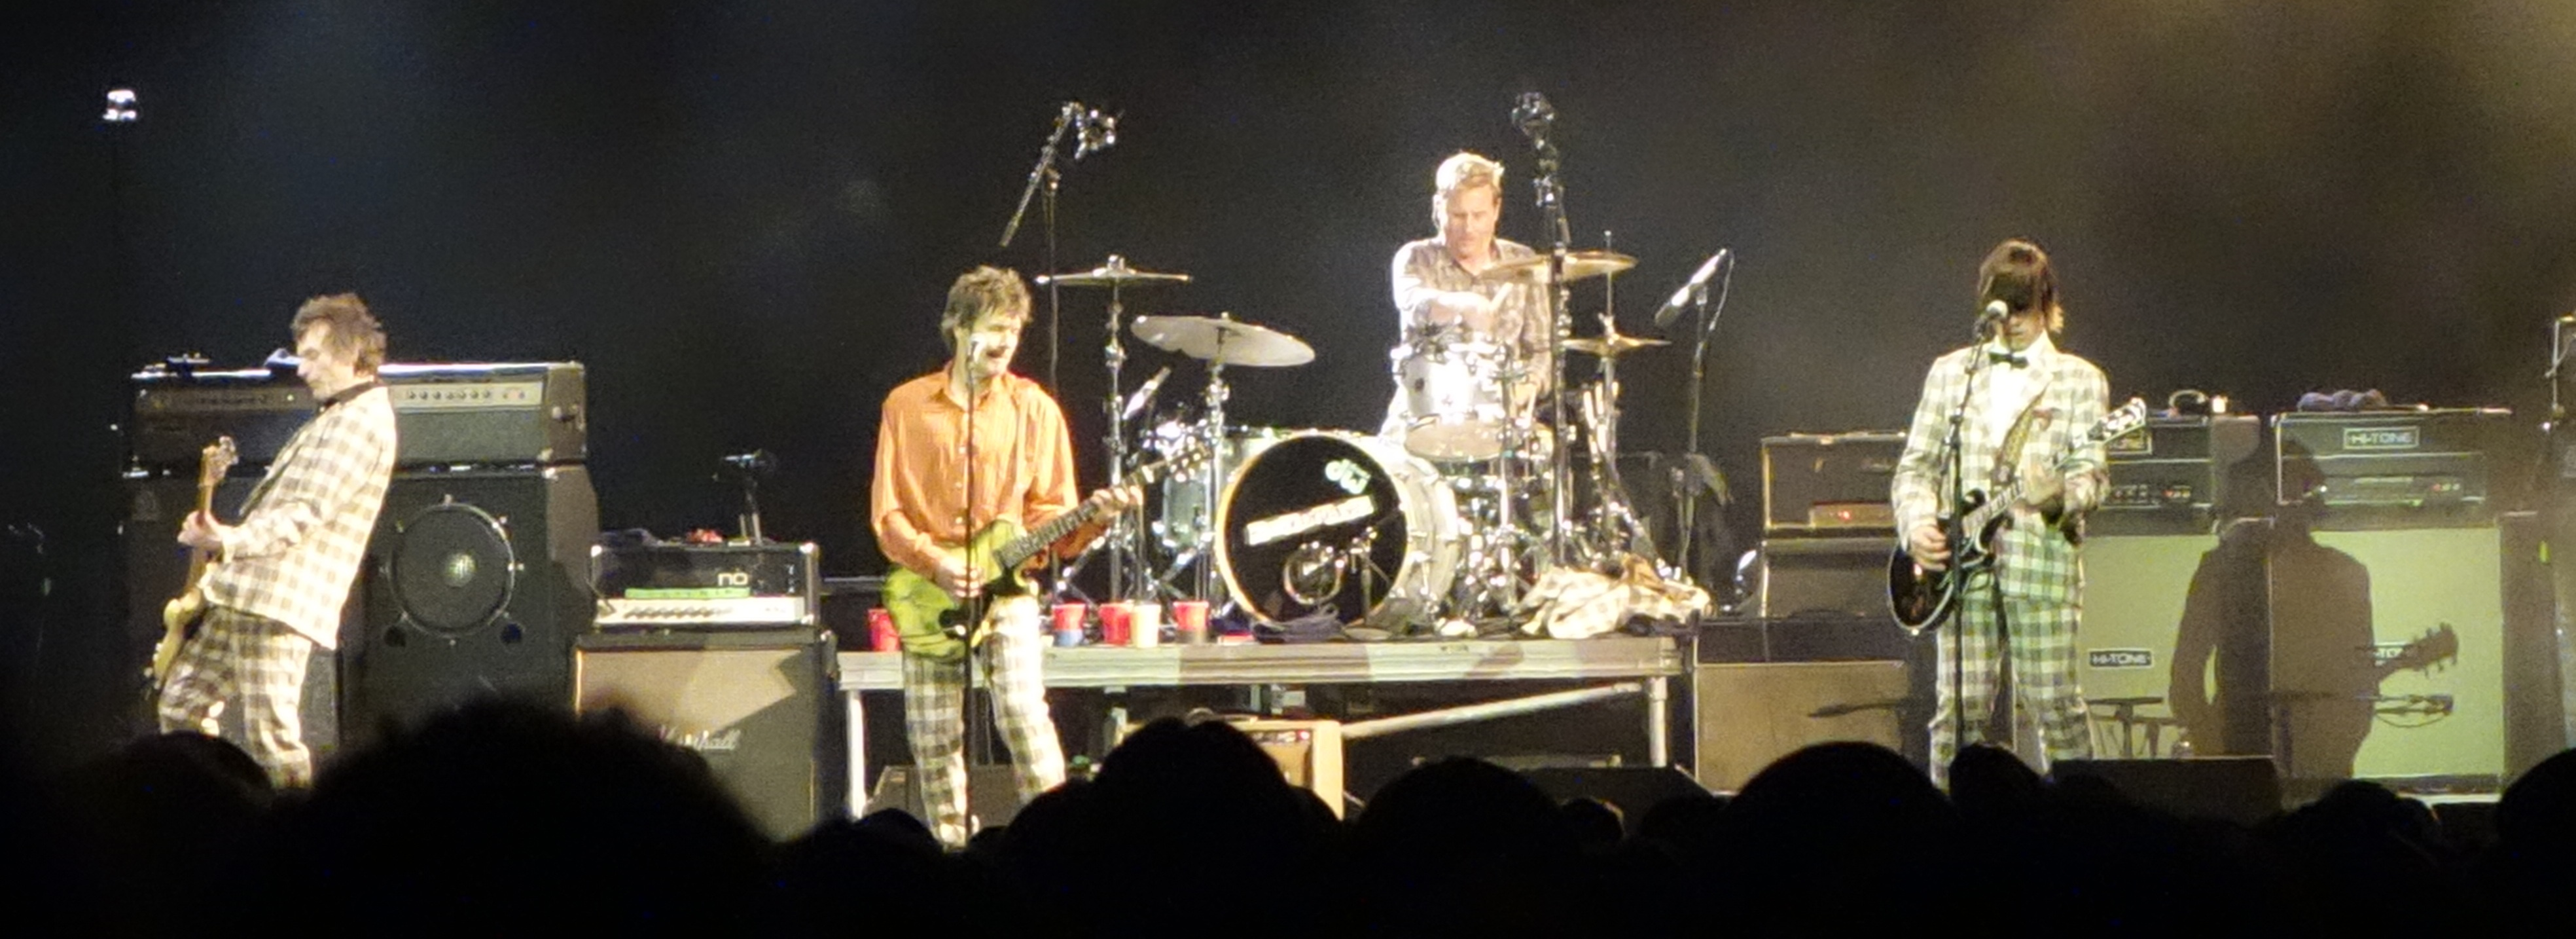 The-Replacements-Midway-Stadium-St-Paul-2014-5